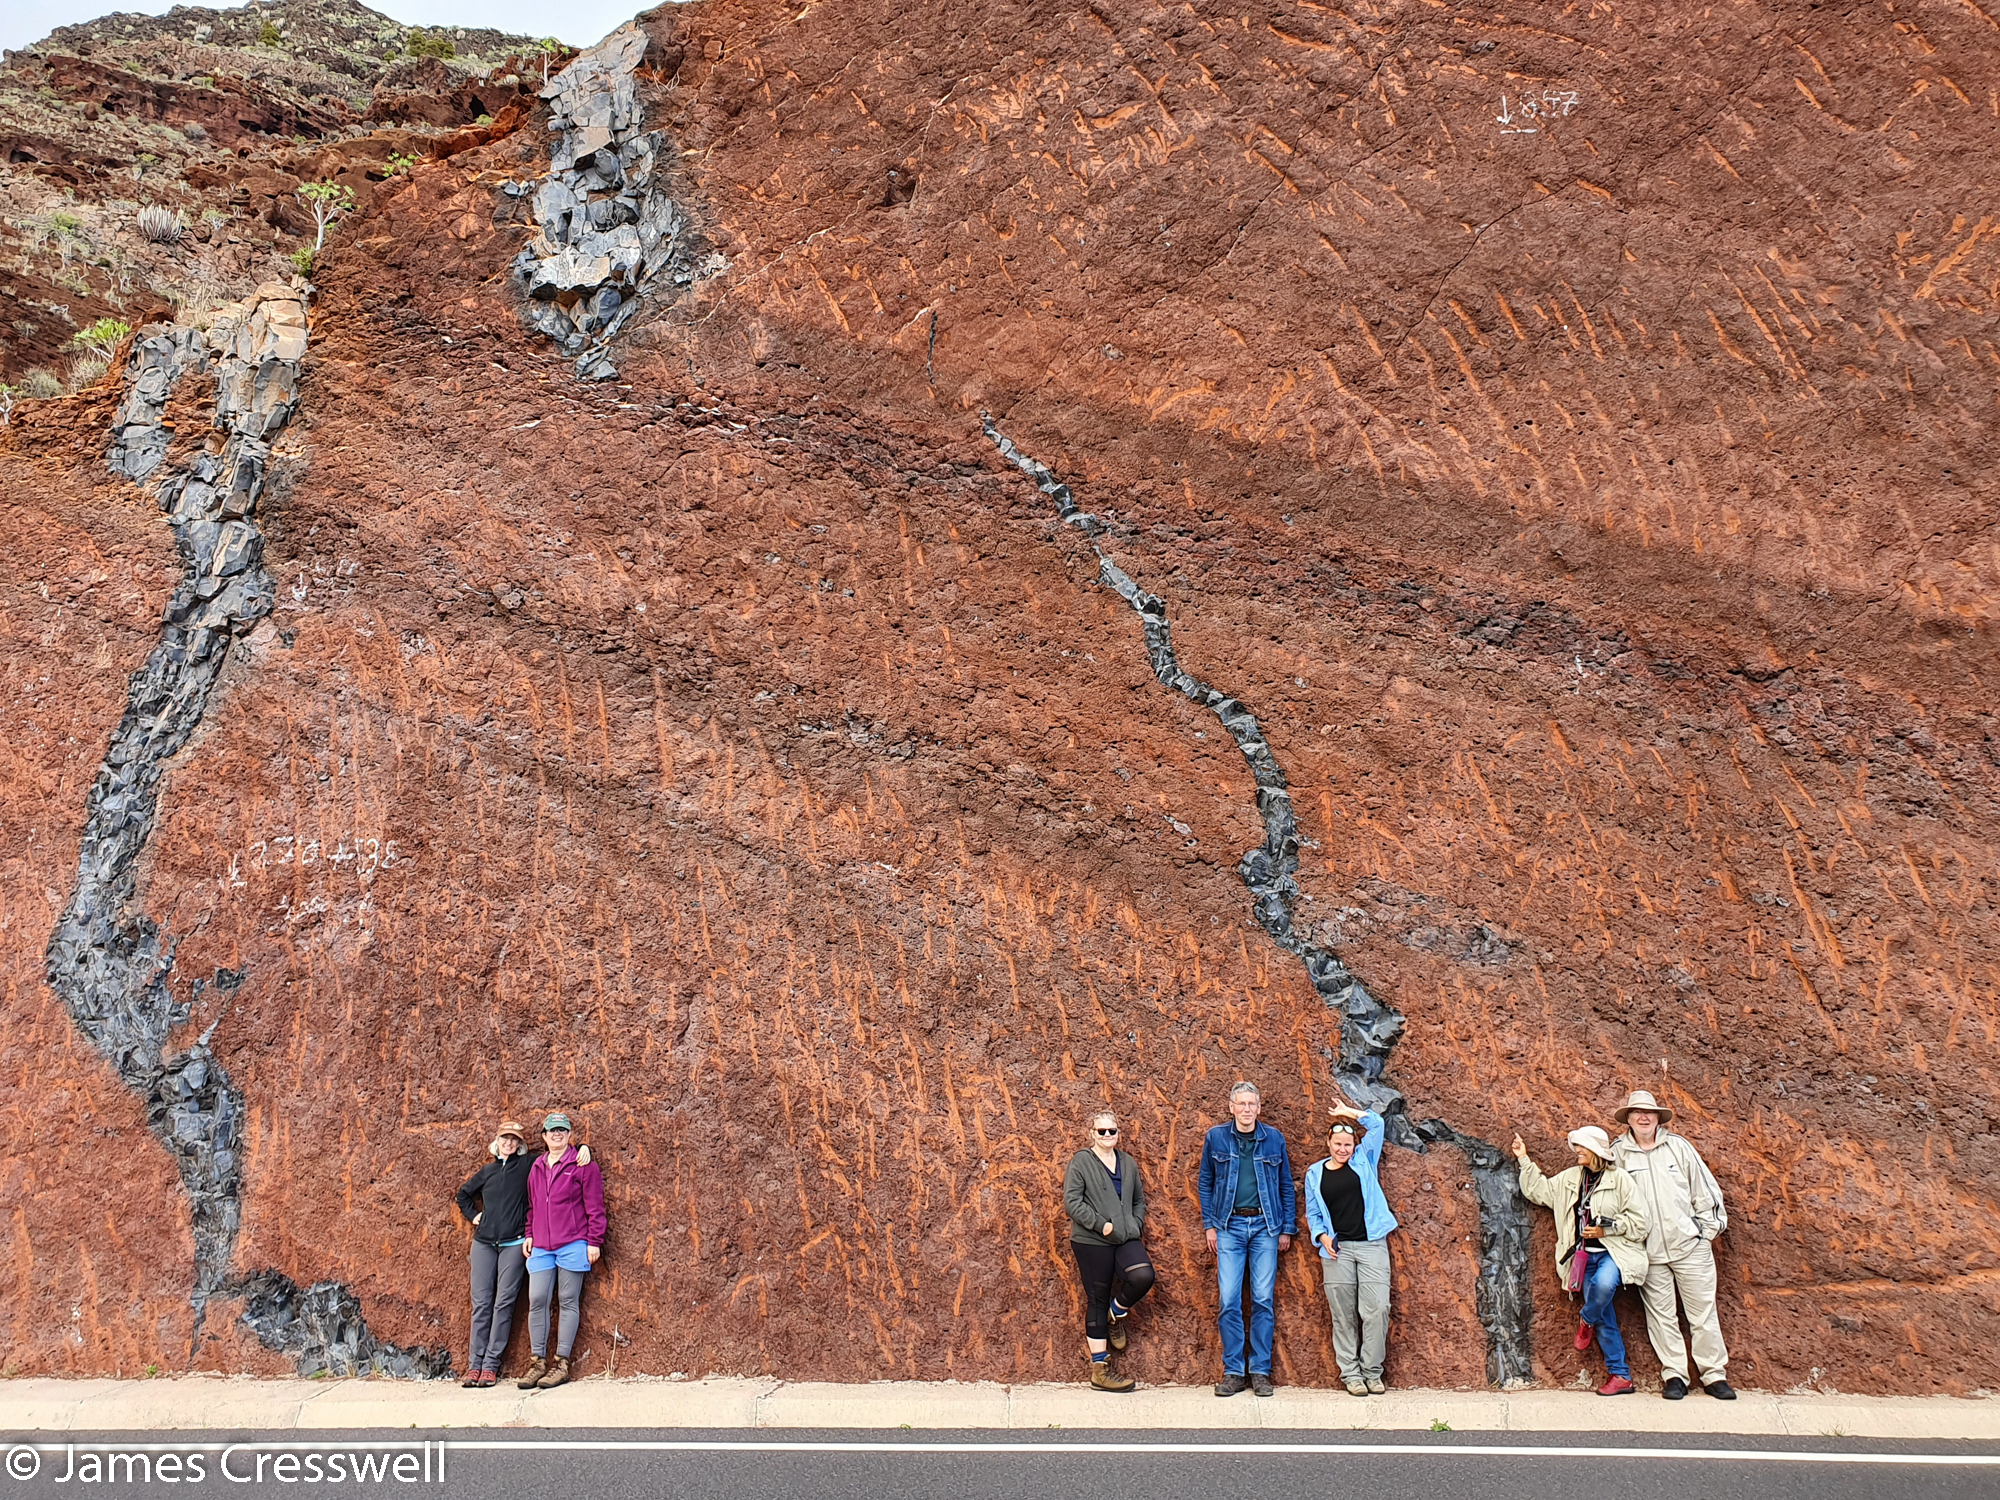 People standing in front of a red cliff face